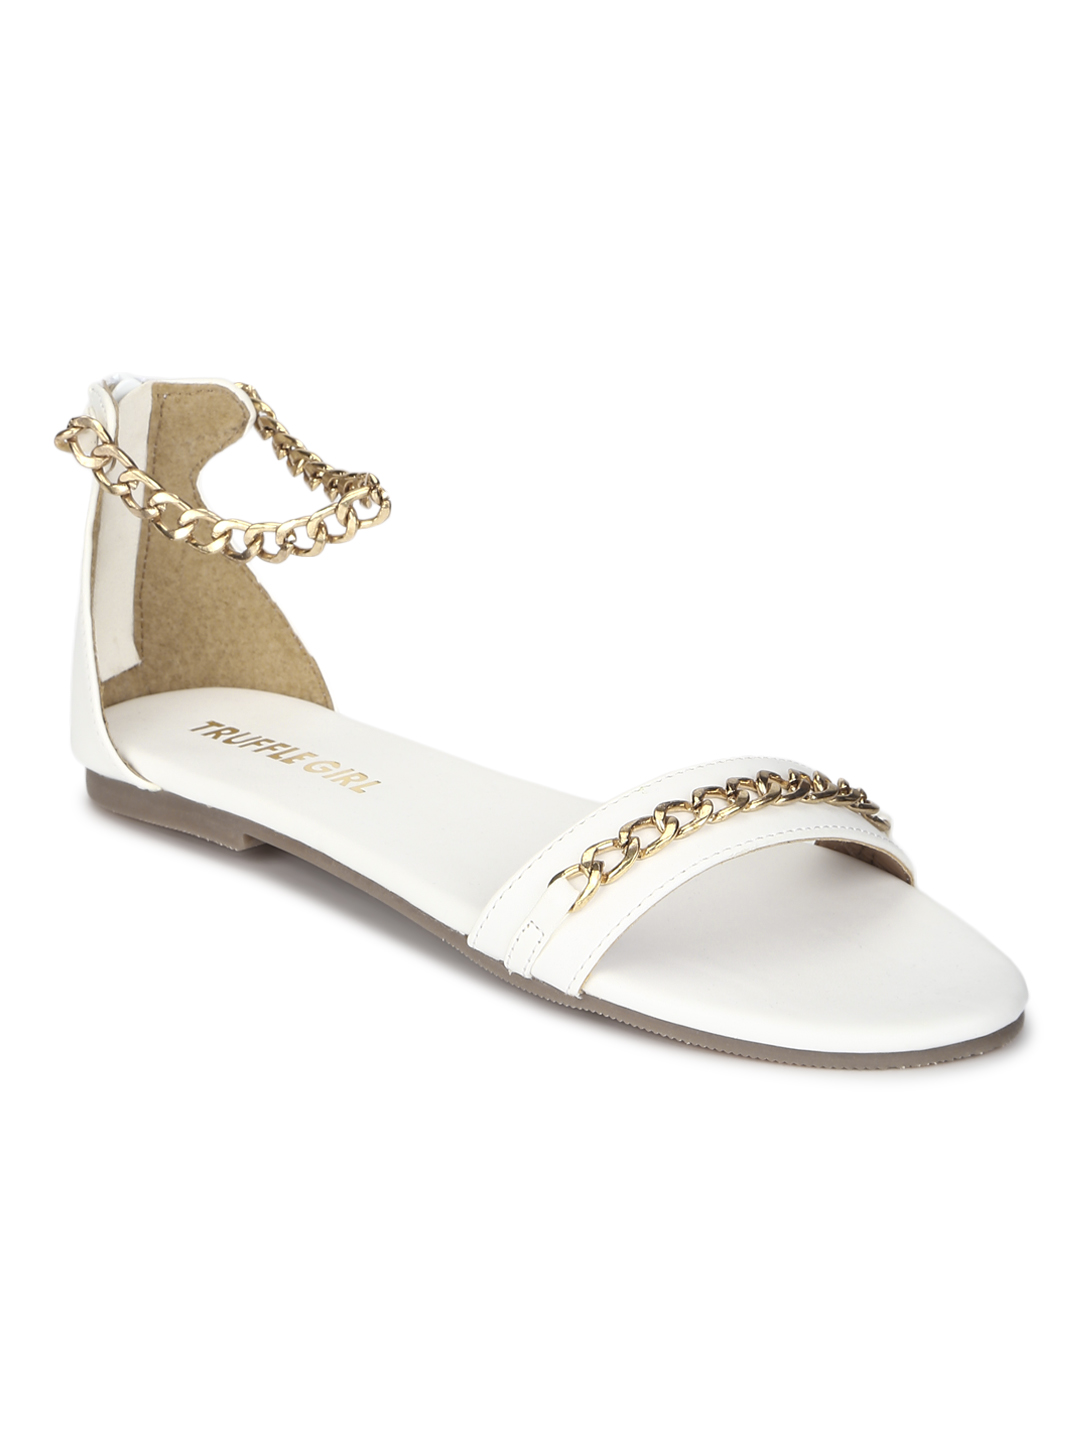 Truffle Collection | Truffle Collection White PU Gold Chained Sandals